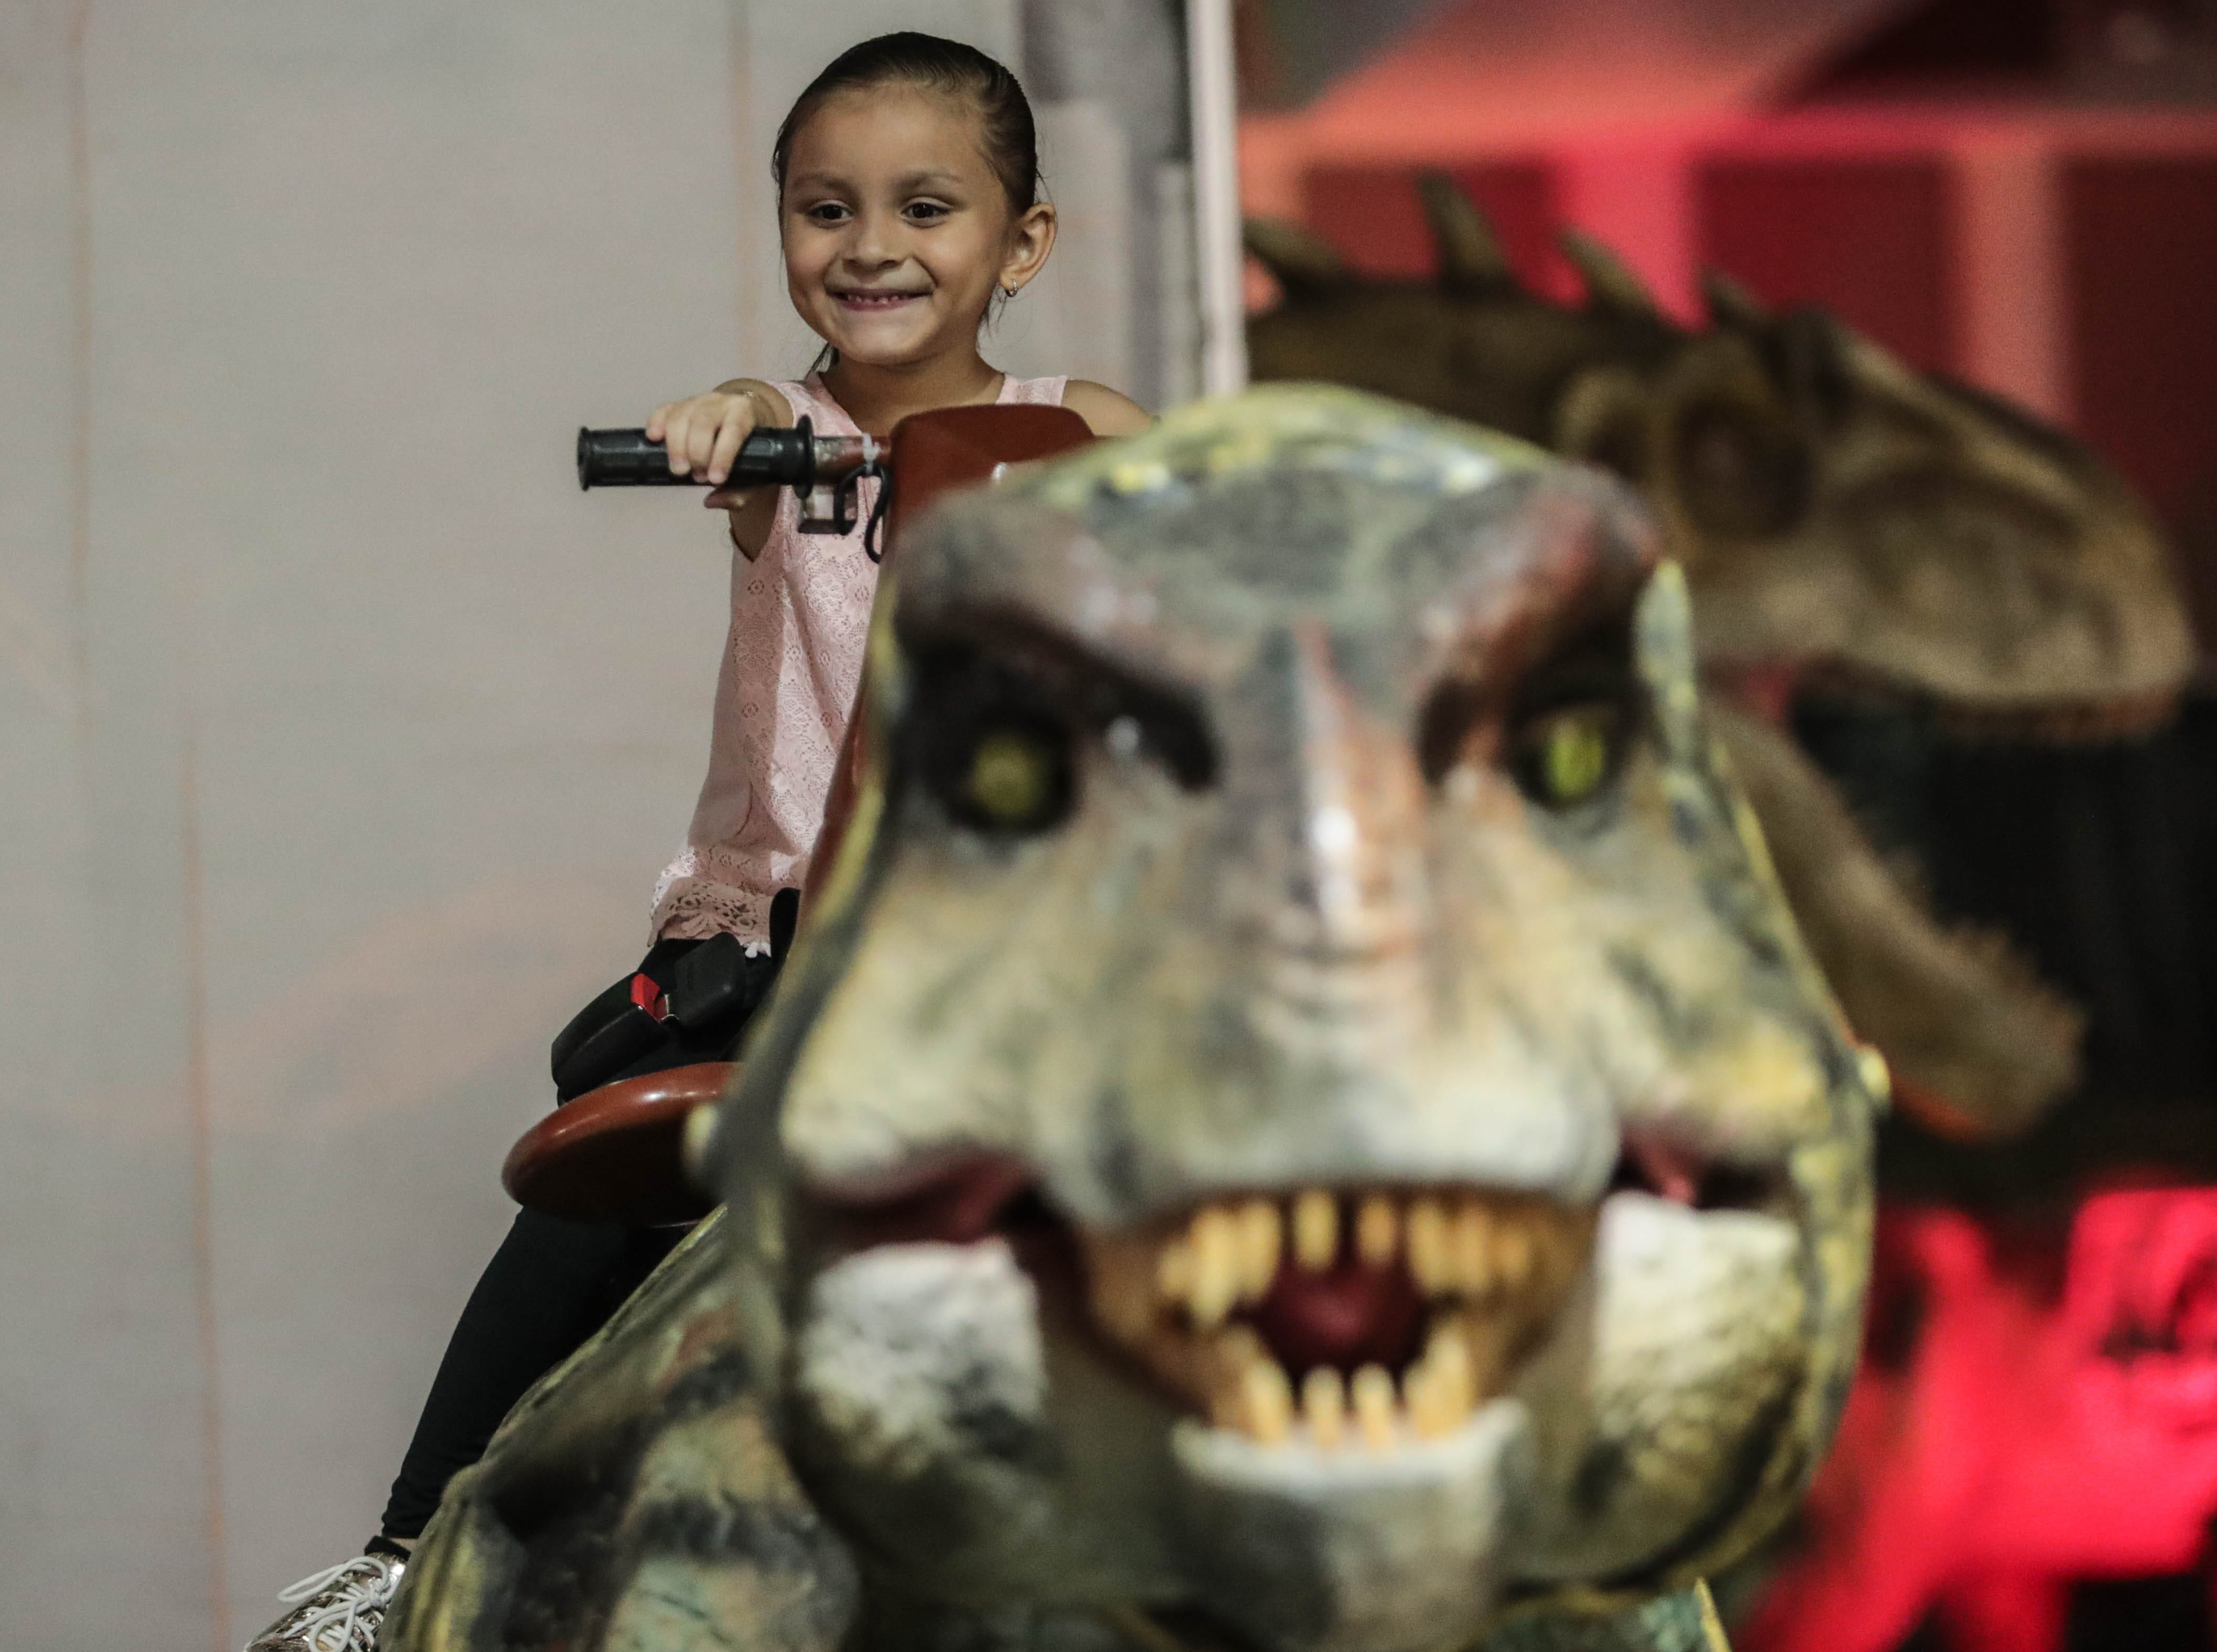 Jasmine Ruiz, 5, on a dinosaur at the visiting attraction, Jurassic Tours, at the Riverside County fairgrounds on Saturday, September 8, 2018 in Indio.